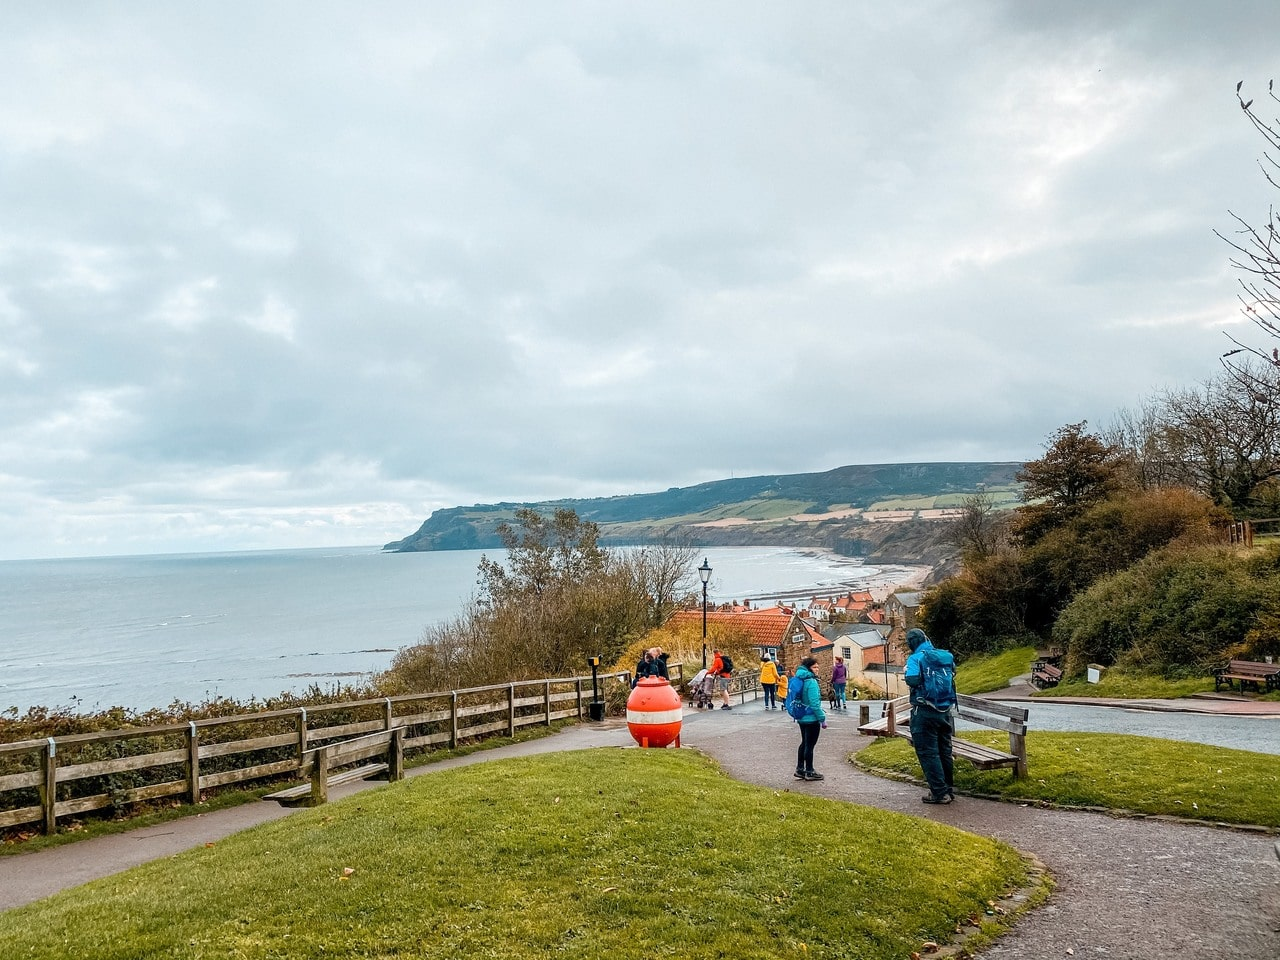 Overlooking Robin Hood's Bay on a North Yorkshire coast road trip day out.